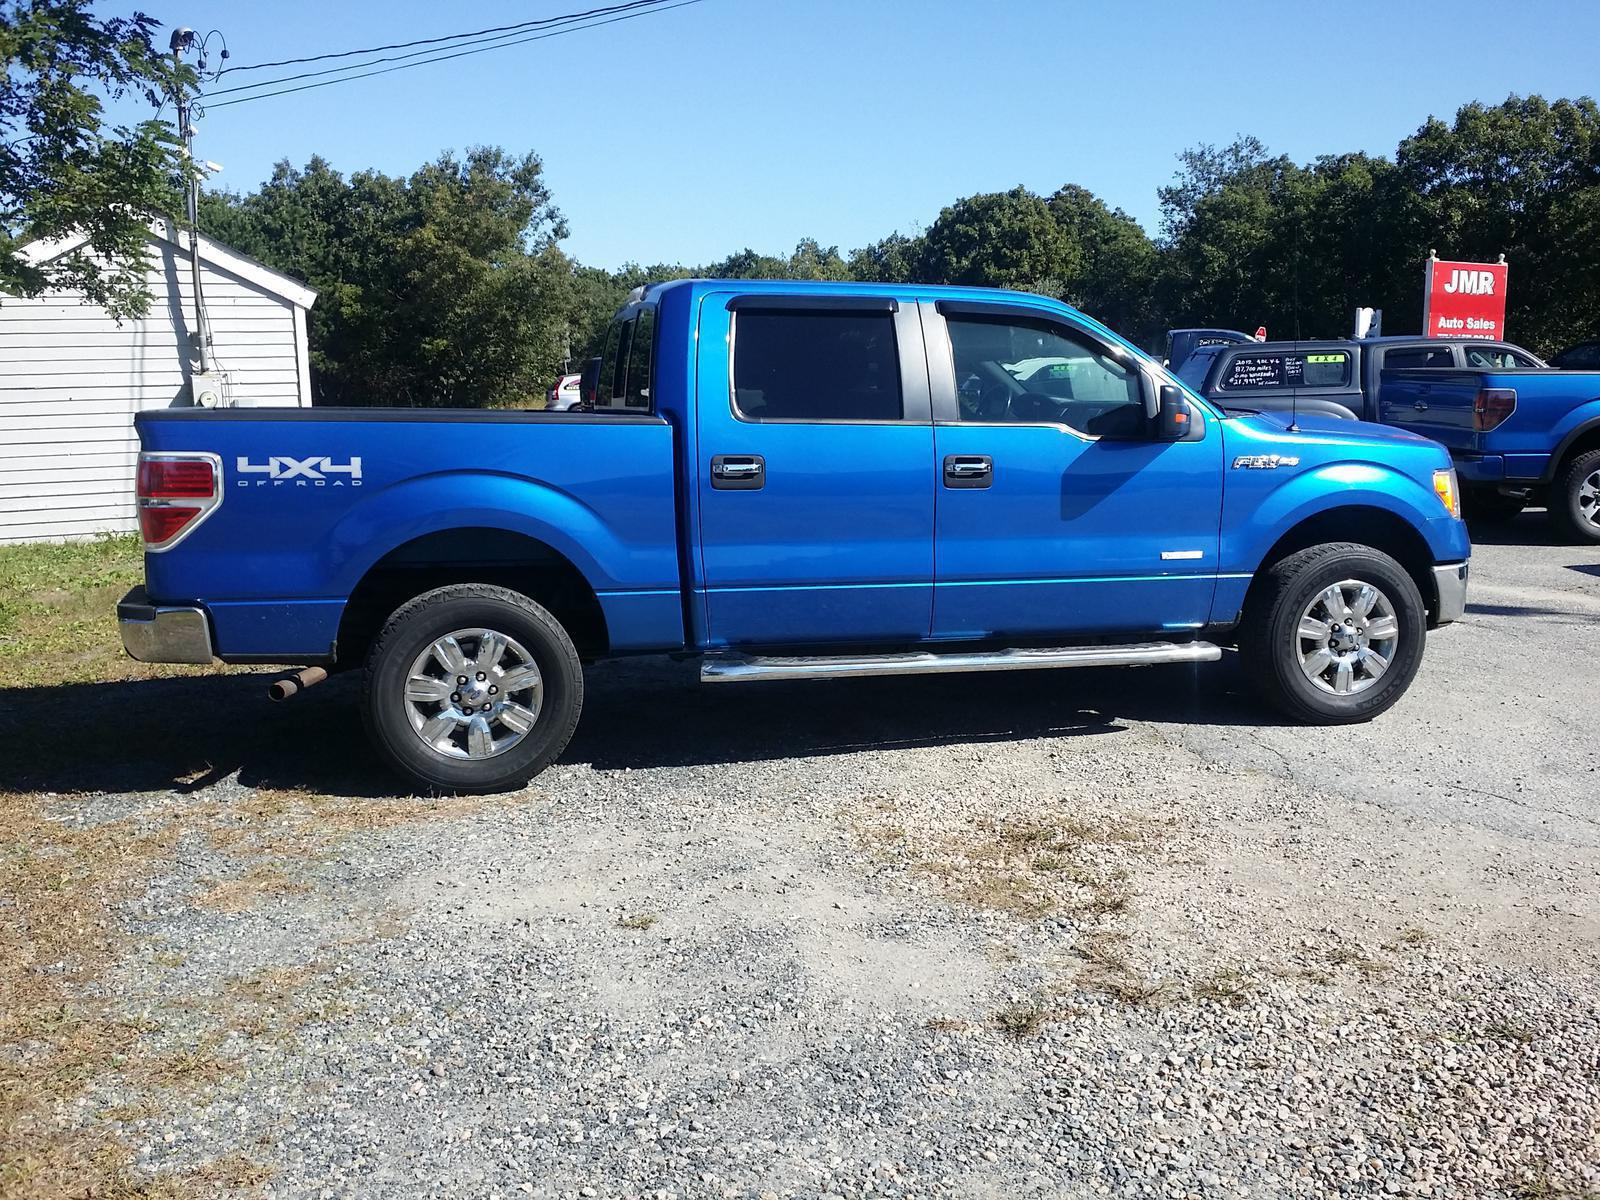 Ford F150 4x4 2011 Ford Ford F150 Supercrew Cab Xlt 4x4 Ecoboost For Sale In